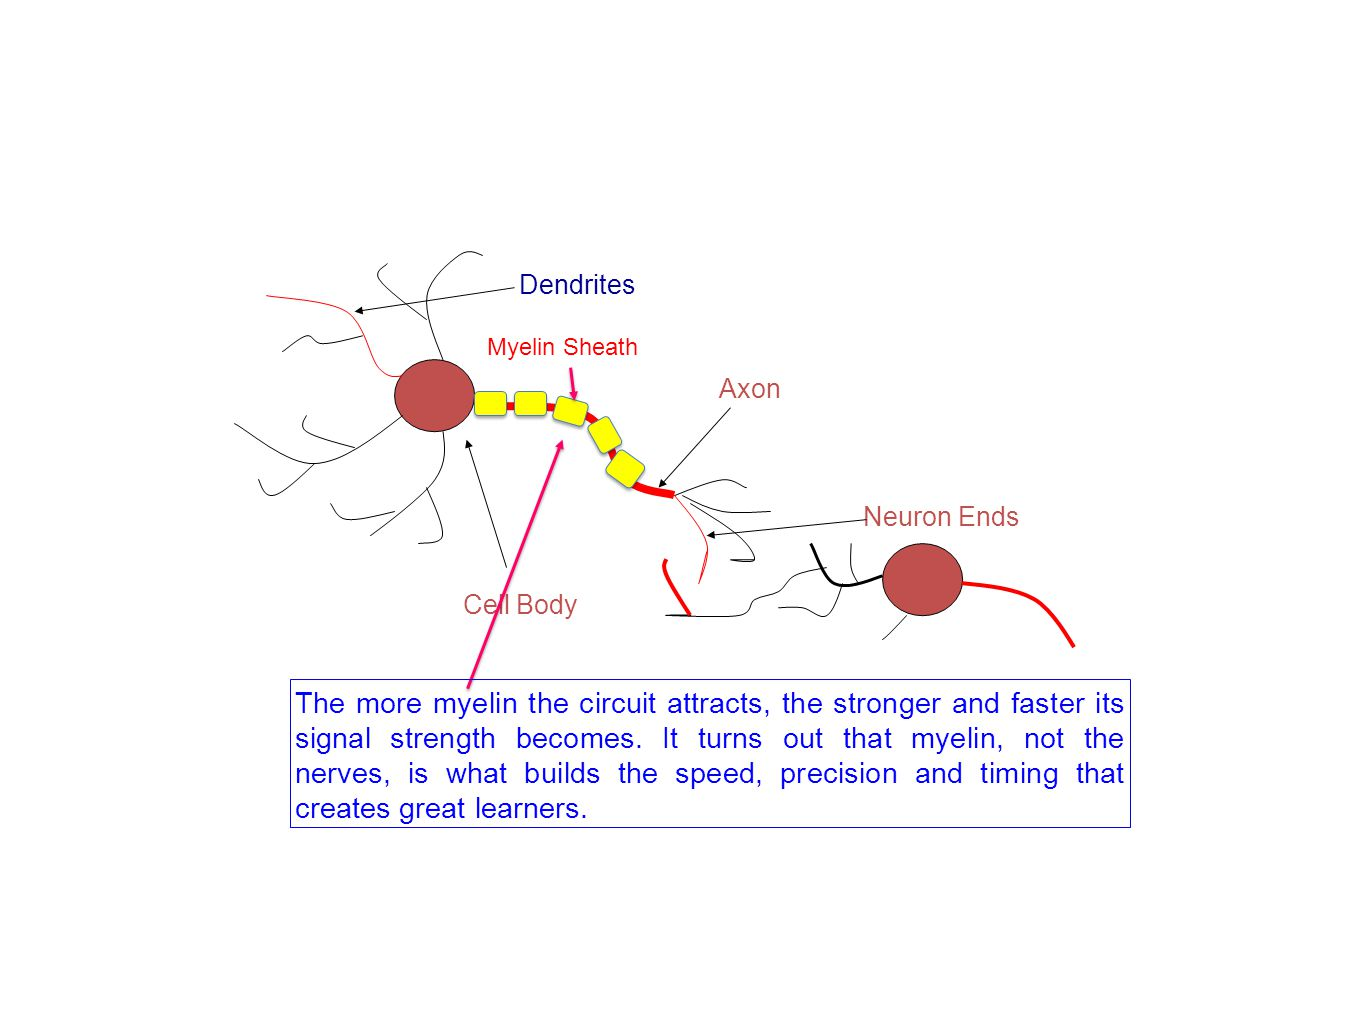 Axon Neuron Ends Cell Body Dendrites Myelin Sheath The more myelin the circuit attracts, the stronger and faster its signal strength becomes.